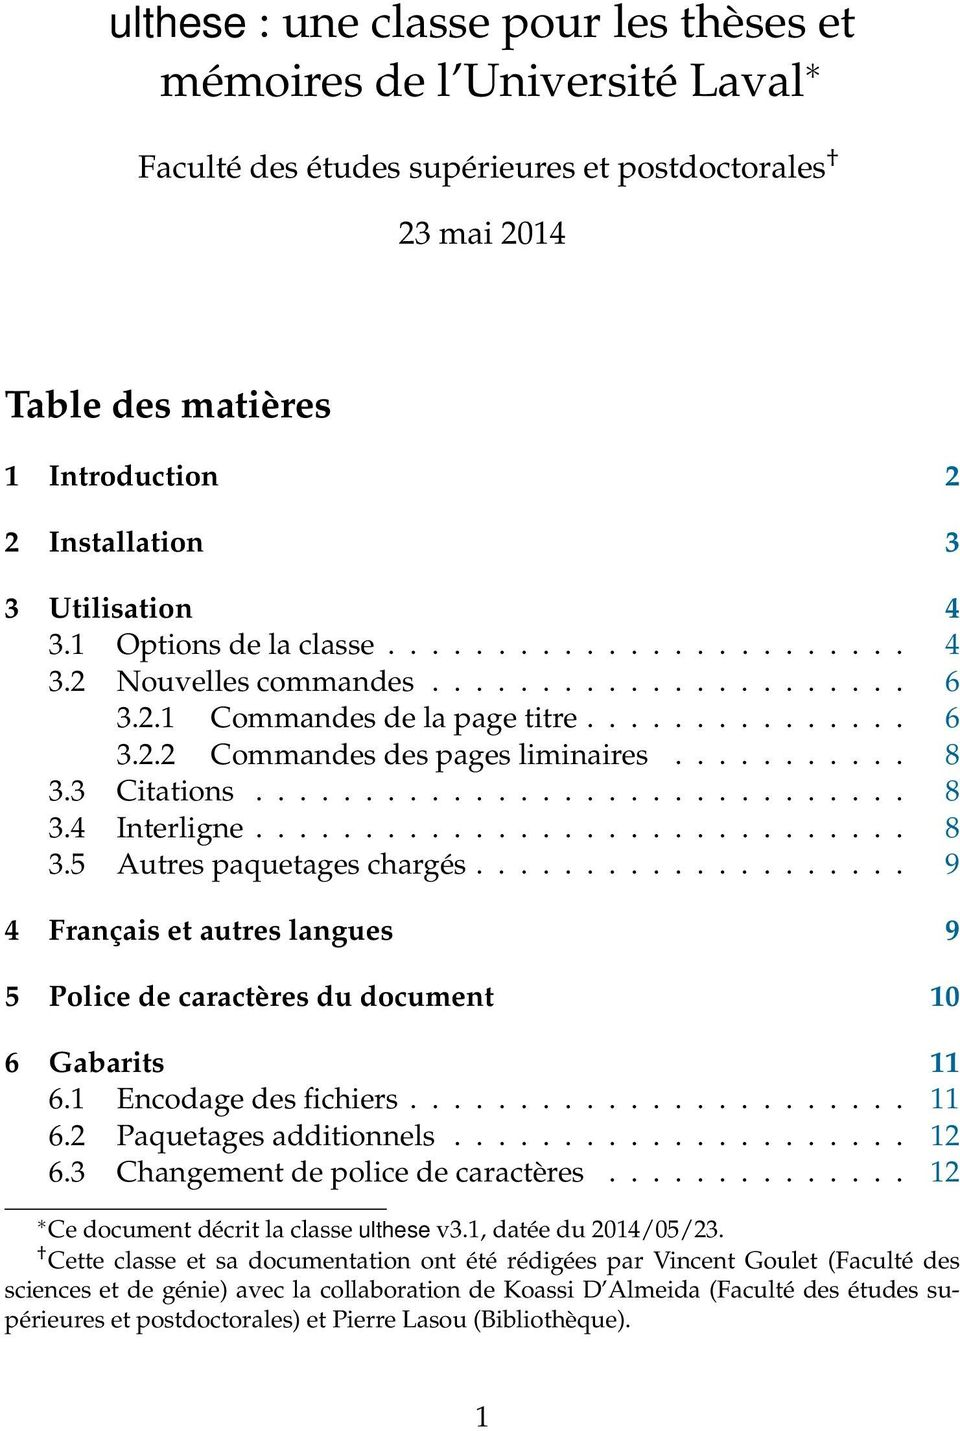 3 Citations.............................. 8 3.4 Interligne.............................. 8 3.5 Autres paquetages chargés.